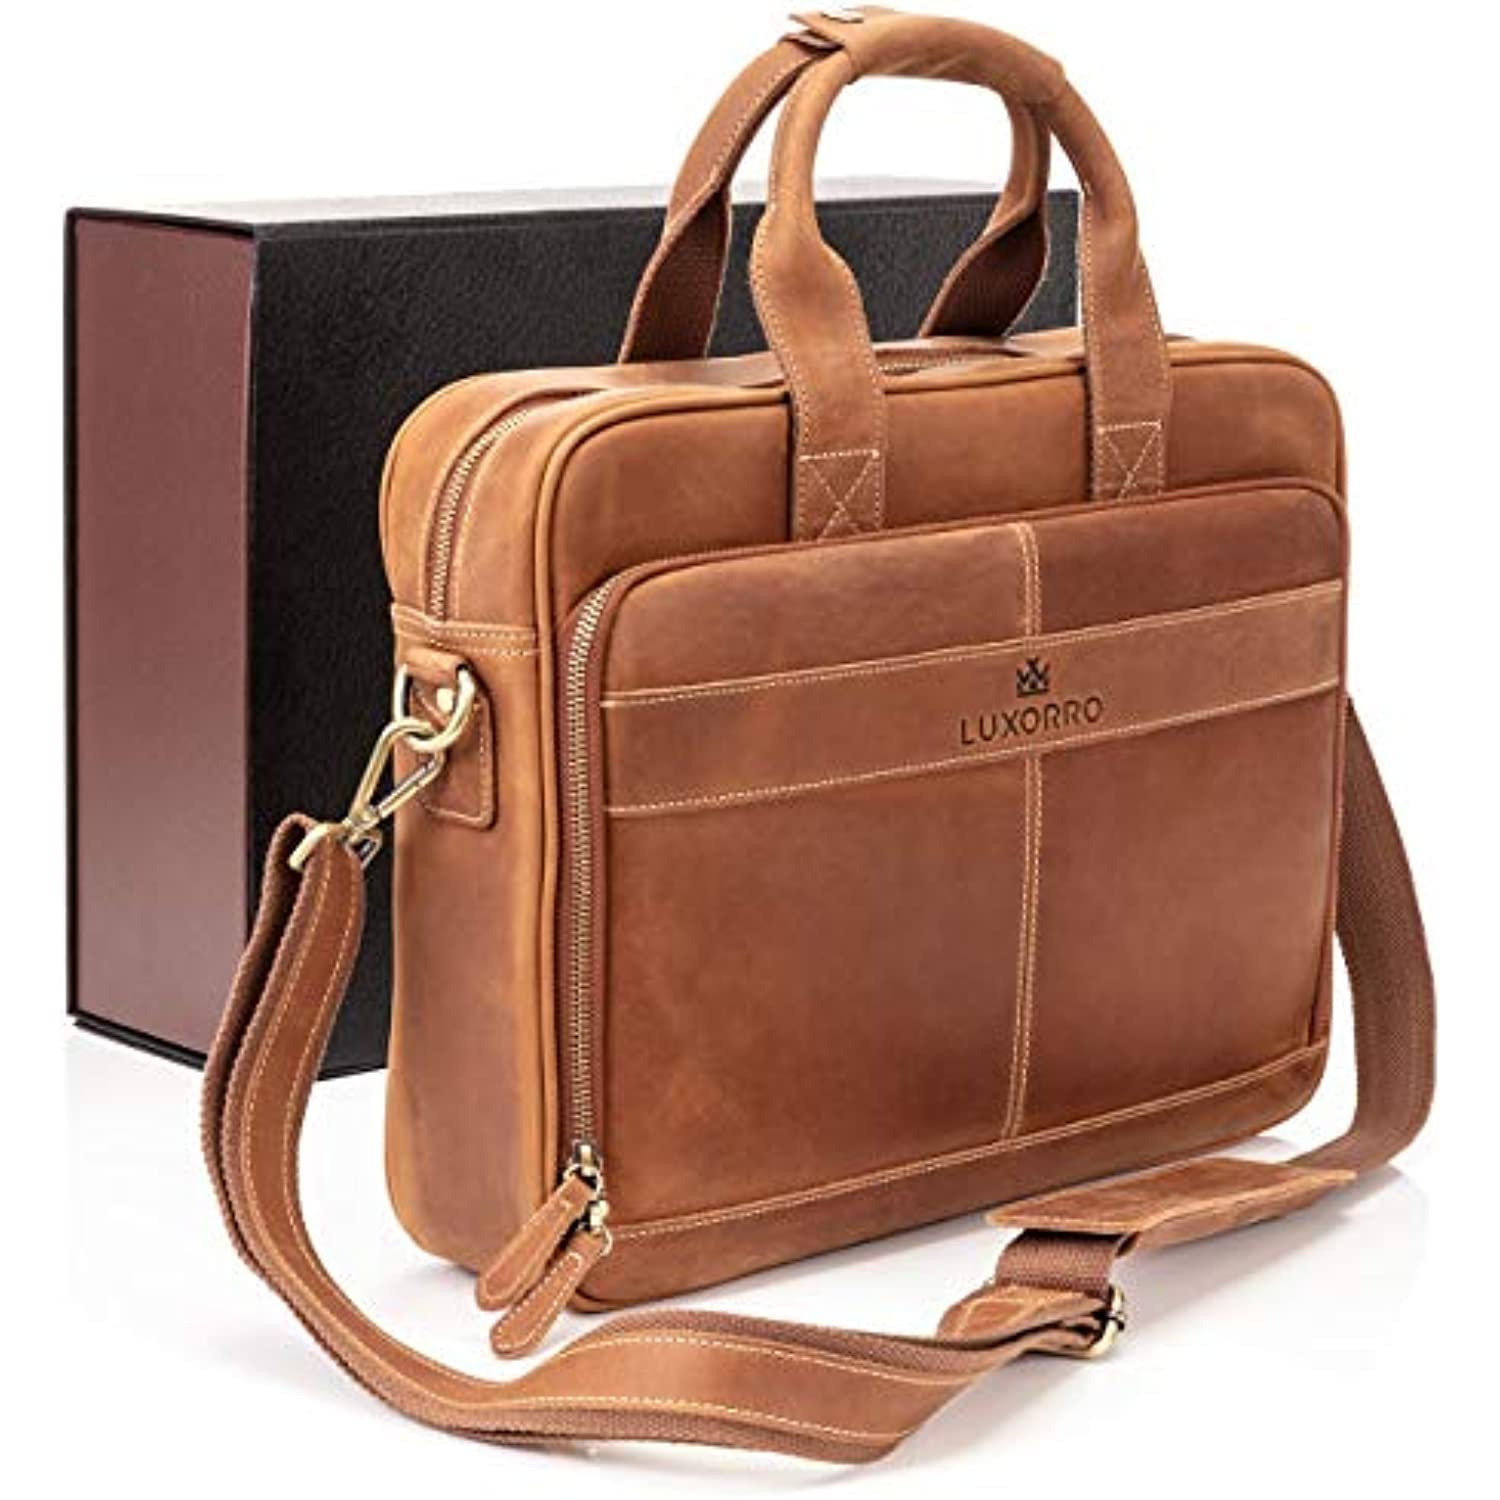 Luxorro Leather Briefcases For Men   Soft, Full Grain Leather Laptop Bag For Men W/hand Stitching That Will Last A Lifetime   Slim But Spacious   Fits 15.6-inch Laptops, Light Brown